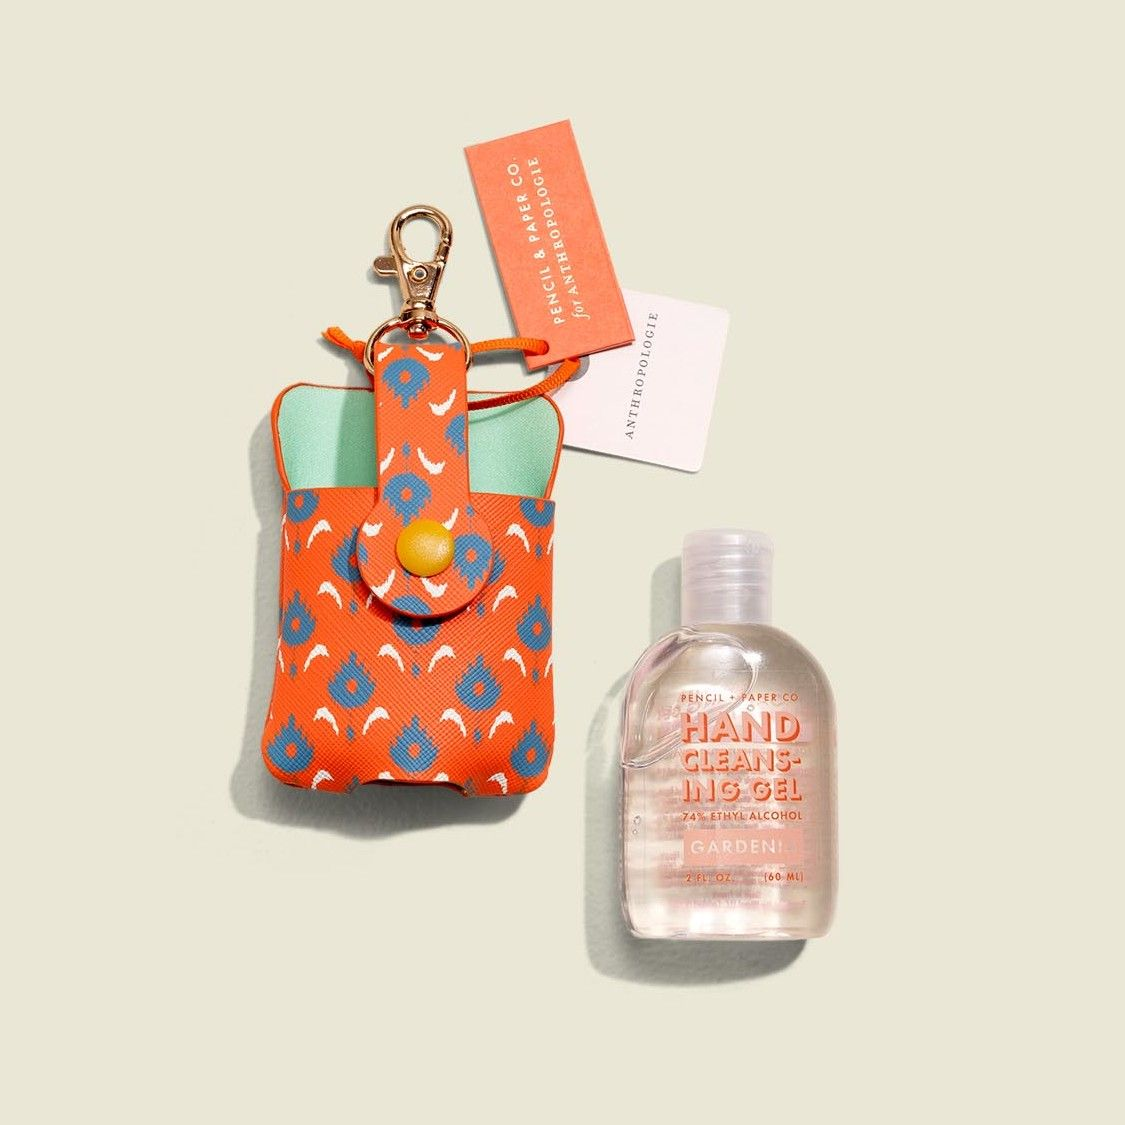 Small pouch with hand sanitizer